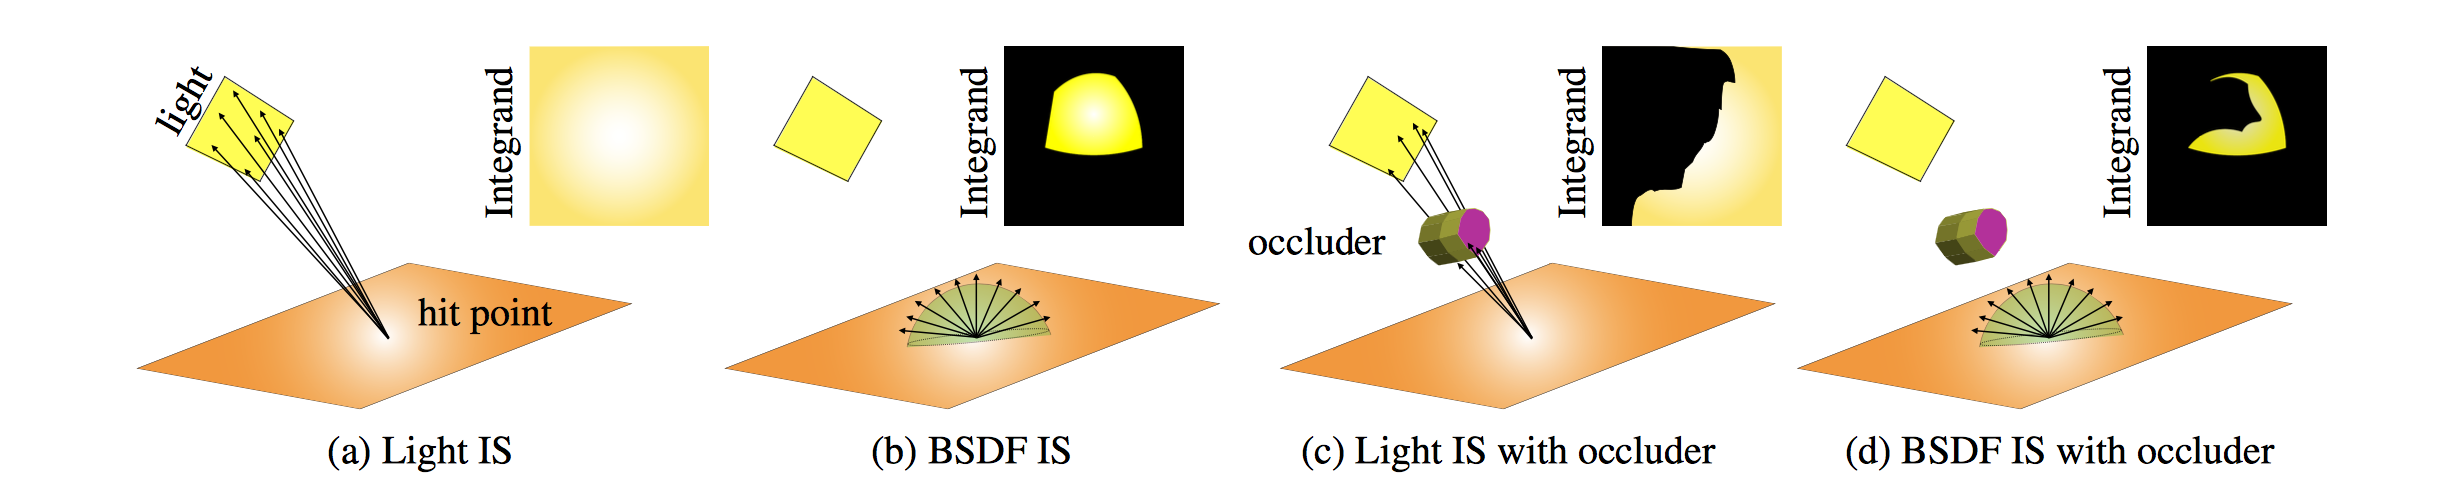 An image from the paper showing common importance sampling strategies for estimating the direct lighting at a surface point. It clearly shows the discontinuities (boundaries between yellow and black regions) in the integration domain of each sampler.